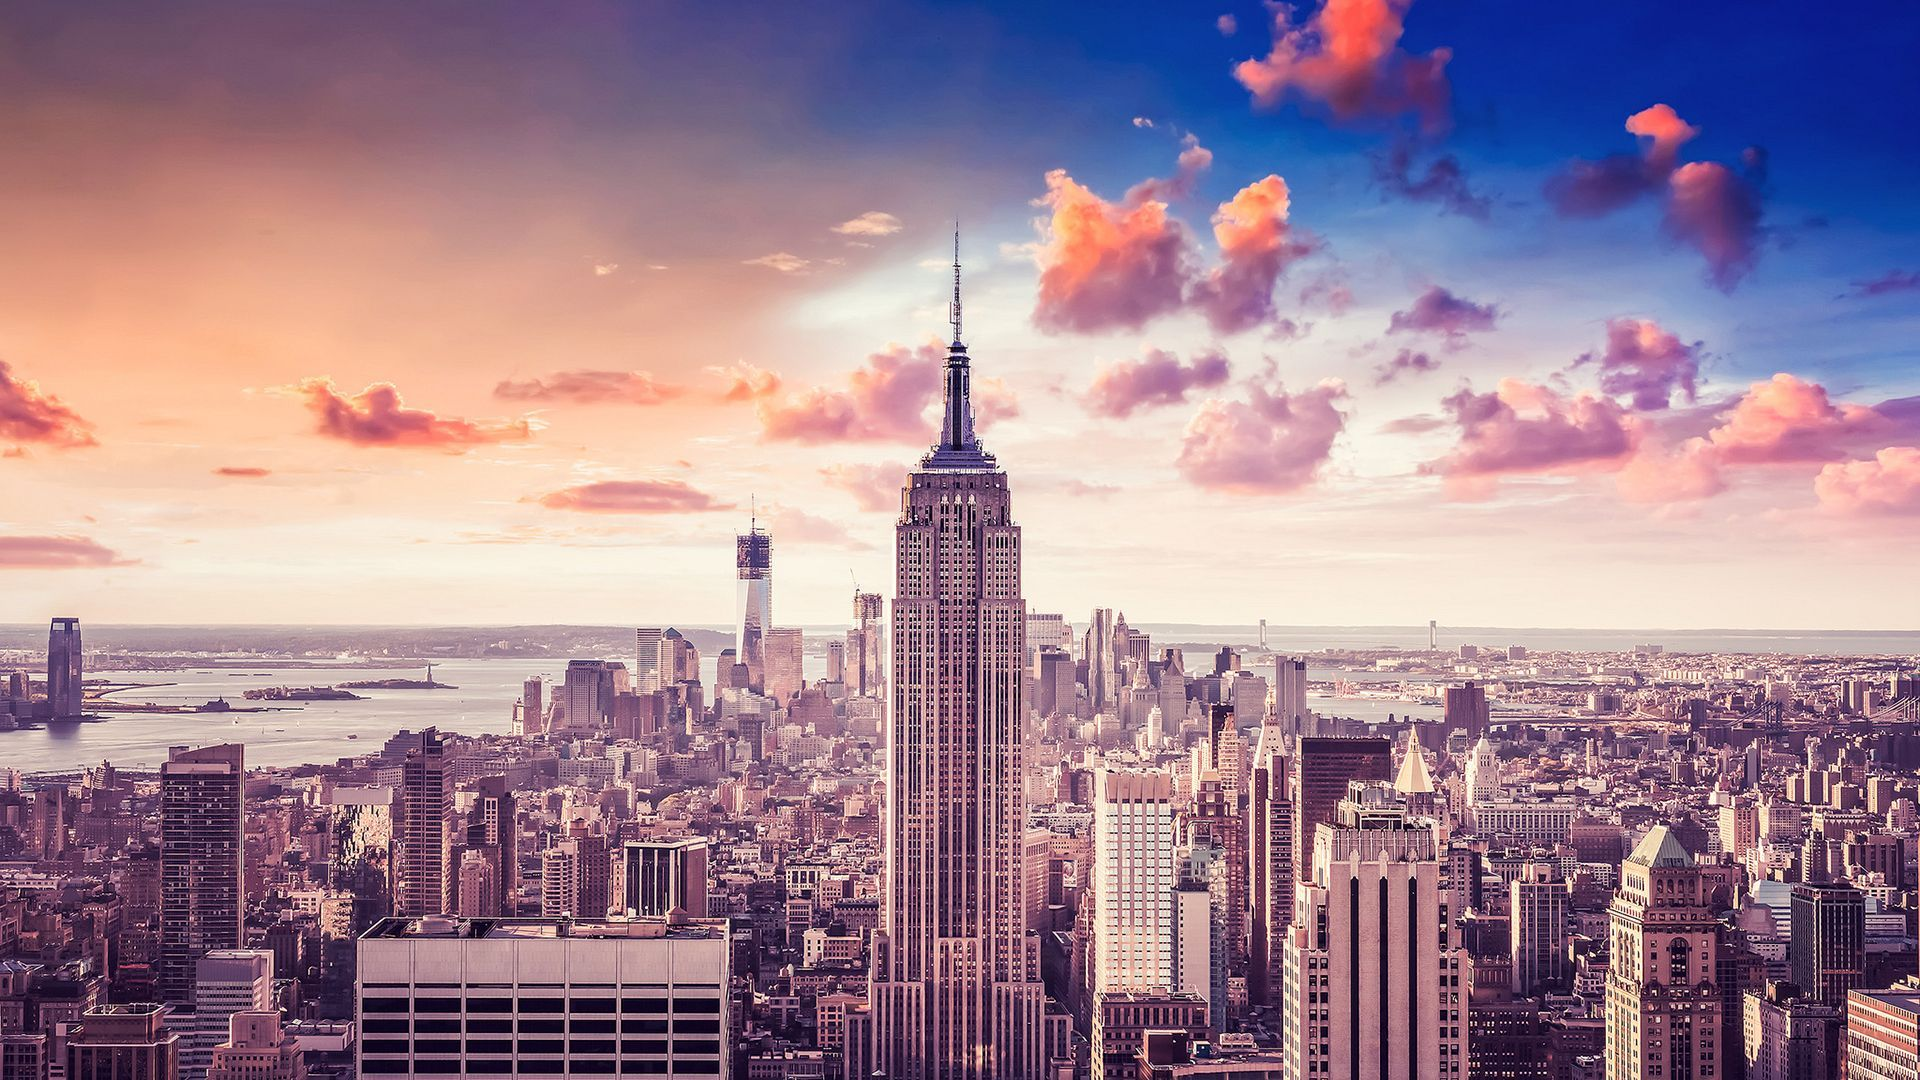 HD New York Wallpapers Are A Depiction Of Western Culture And